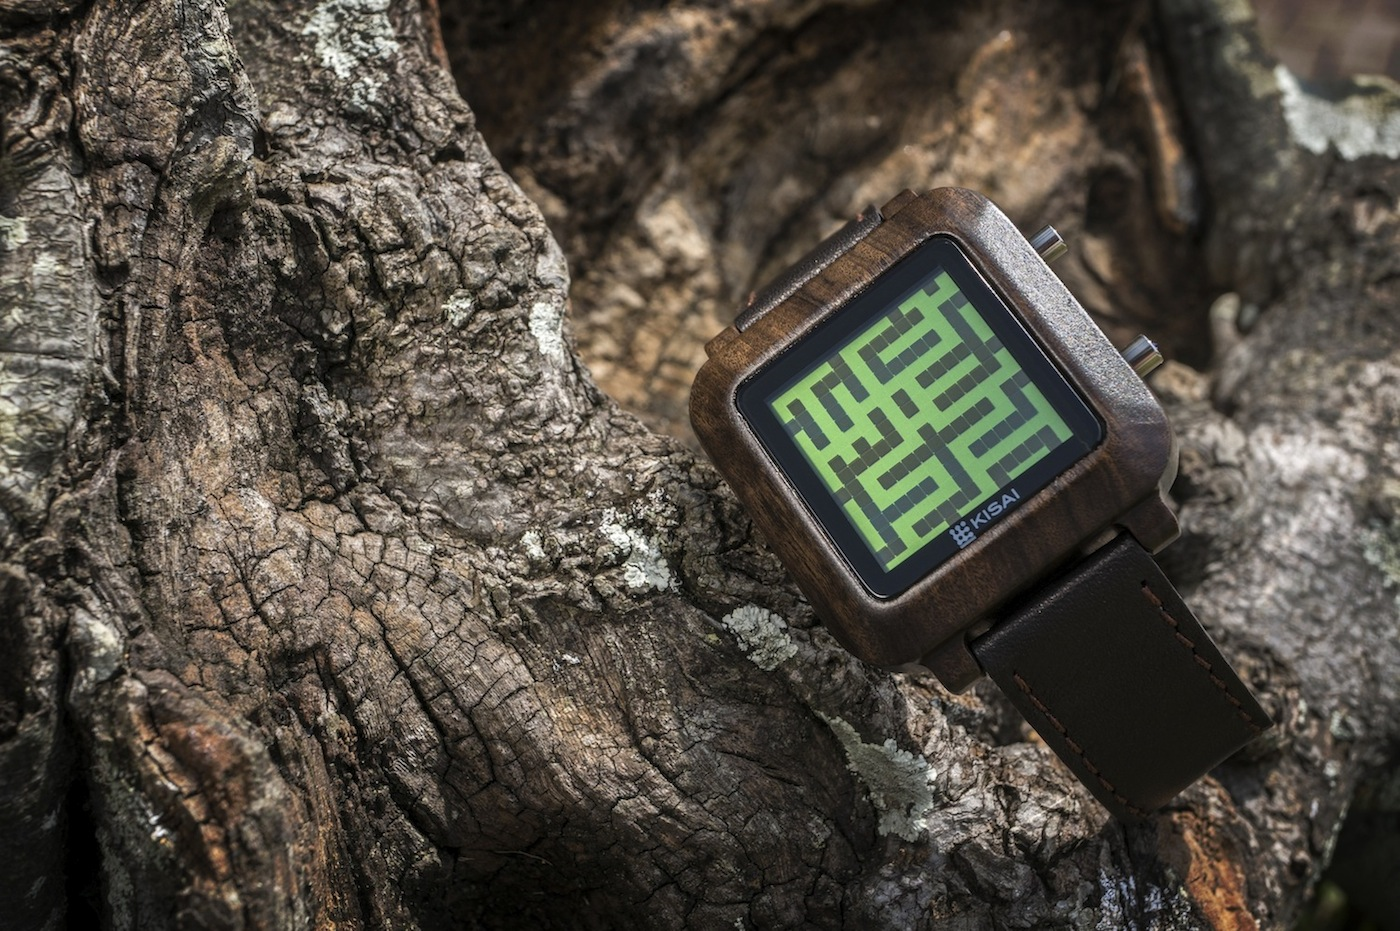 kisai_maze_wood_watch_from_tokyoflash_japan_08